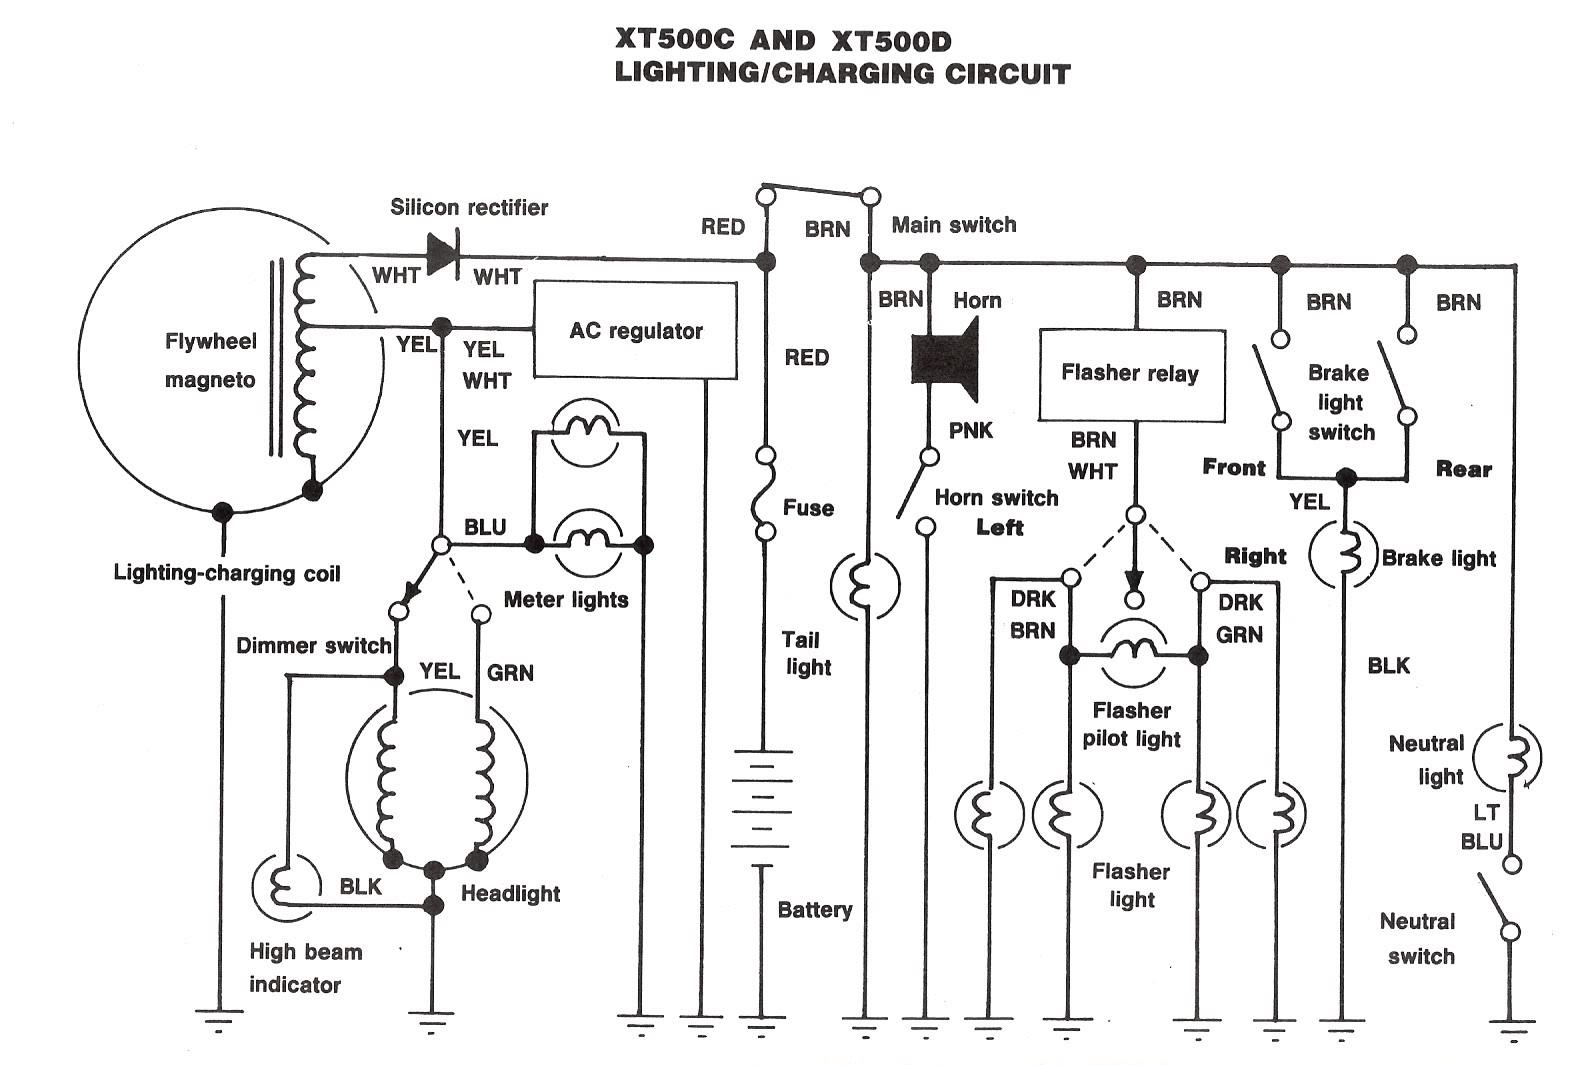 Xt500 Electrical2 Lights As Well Flasher Relay Wiring Diagram Together With Street Light Here Is The Lighting And Charging System For Later Xt500s A 2 Position Ignition Switch No Provision To Headlight Off